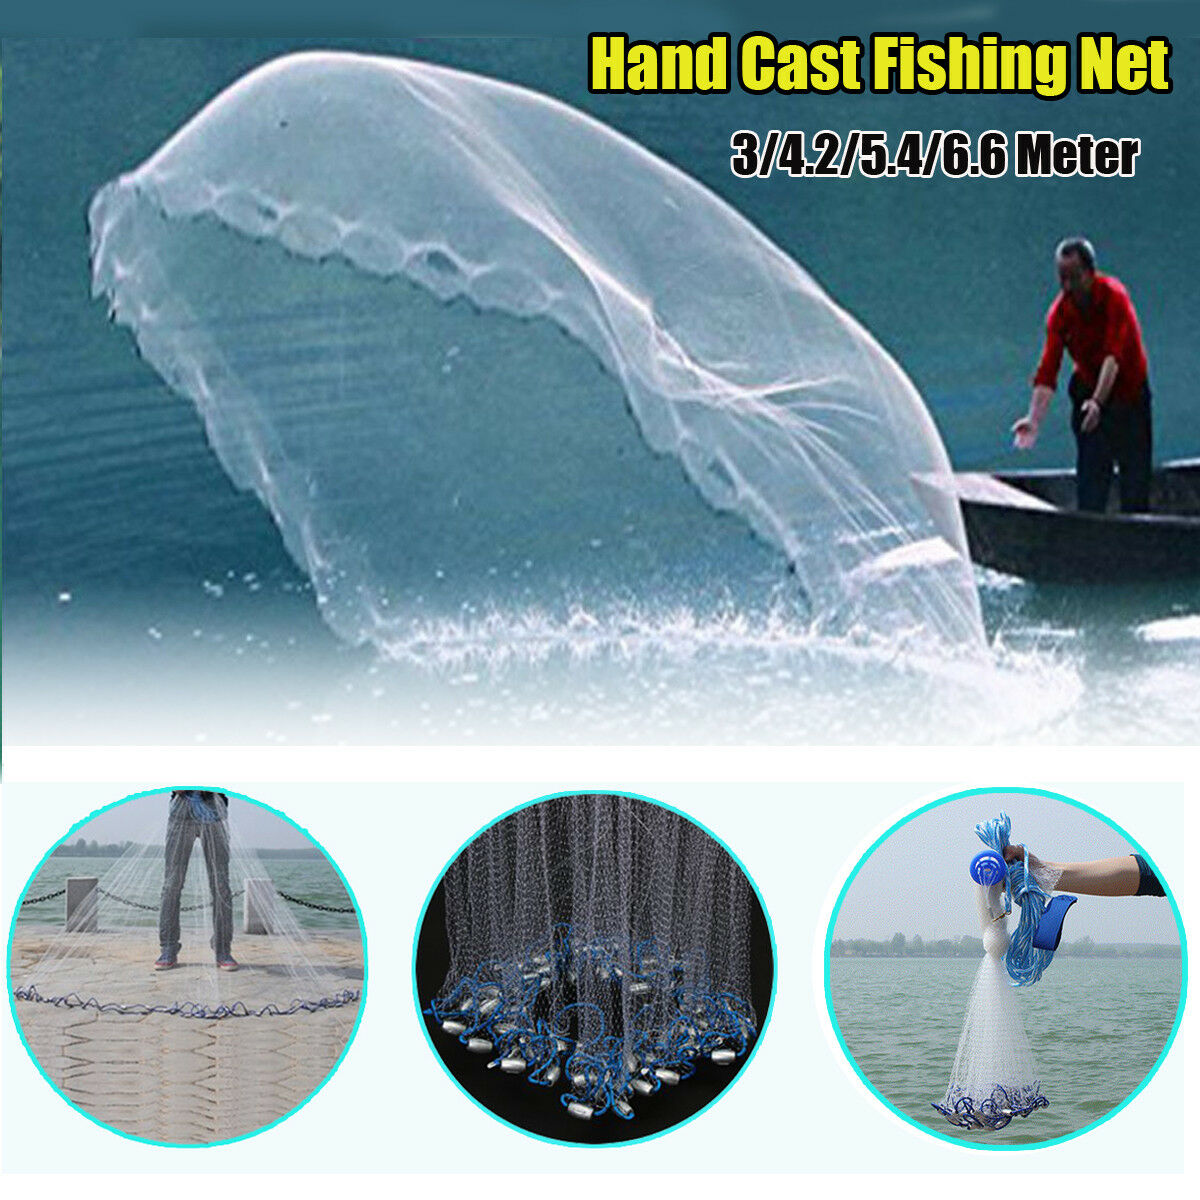 14 18 22 30FT Hand Cast Fishing Mesh Equipment Spin Network Bait Fish Net+Sinker